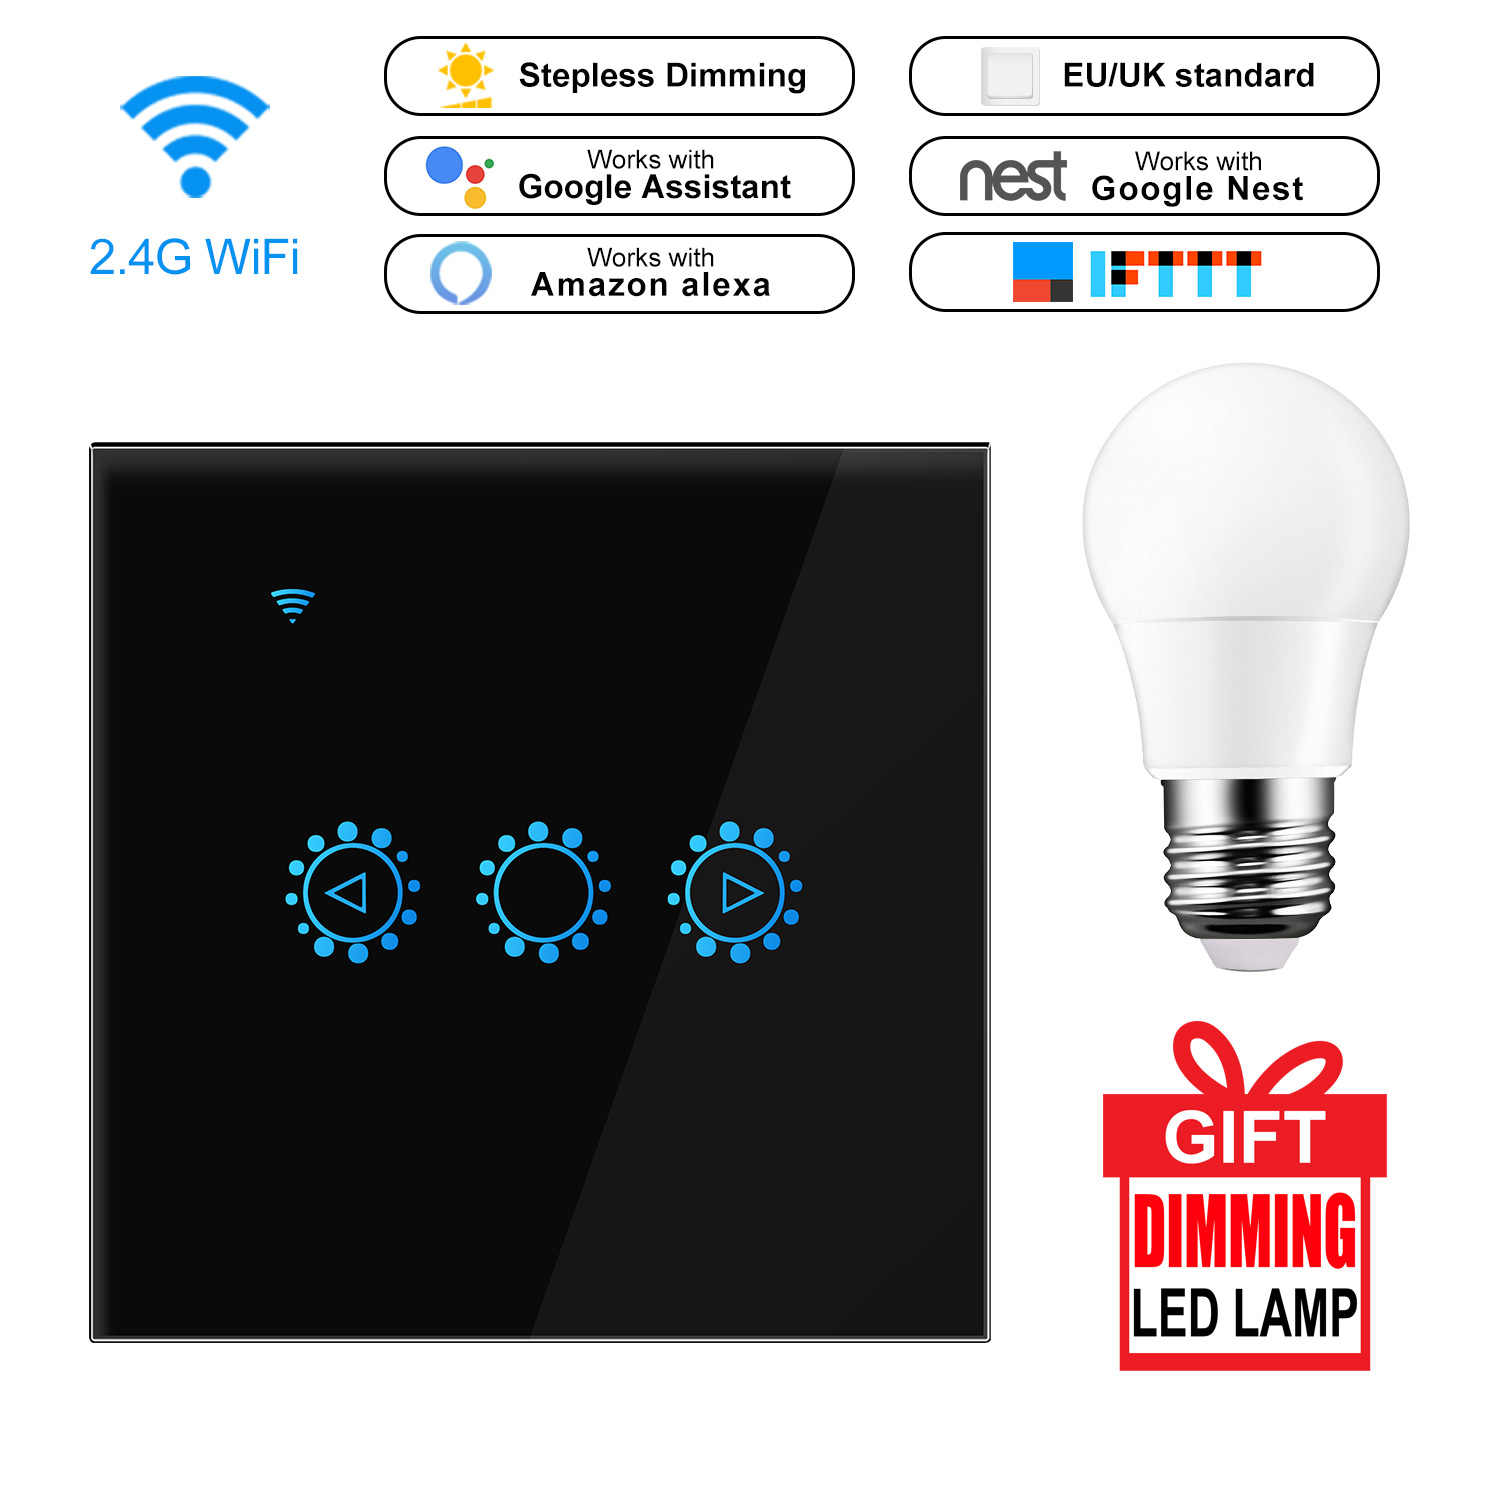 Led Dimmer 220v Smart Wifi Switch Touch Control Stepless Dimmer With Bulb Compatible With Amazon Alexa Google Assistant Ewelink